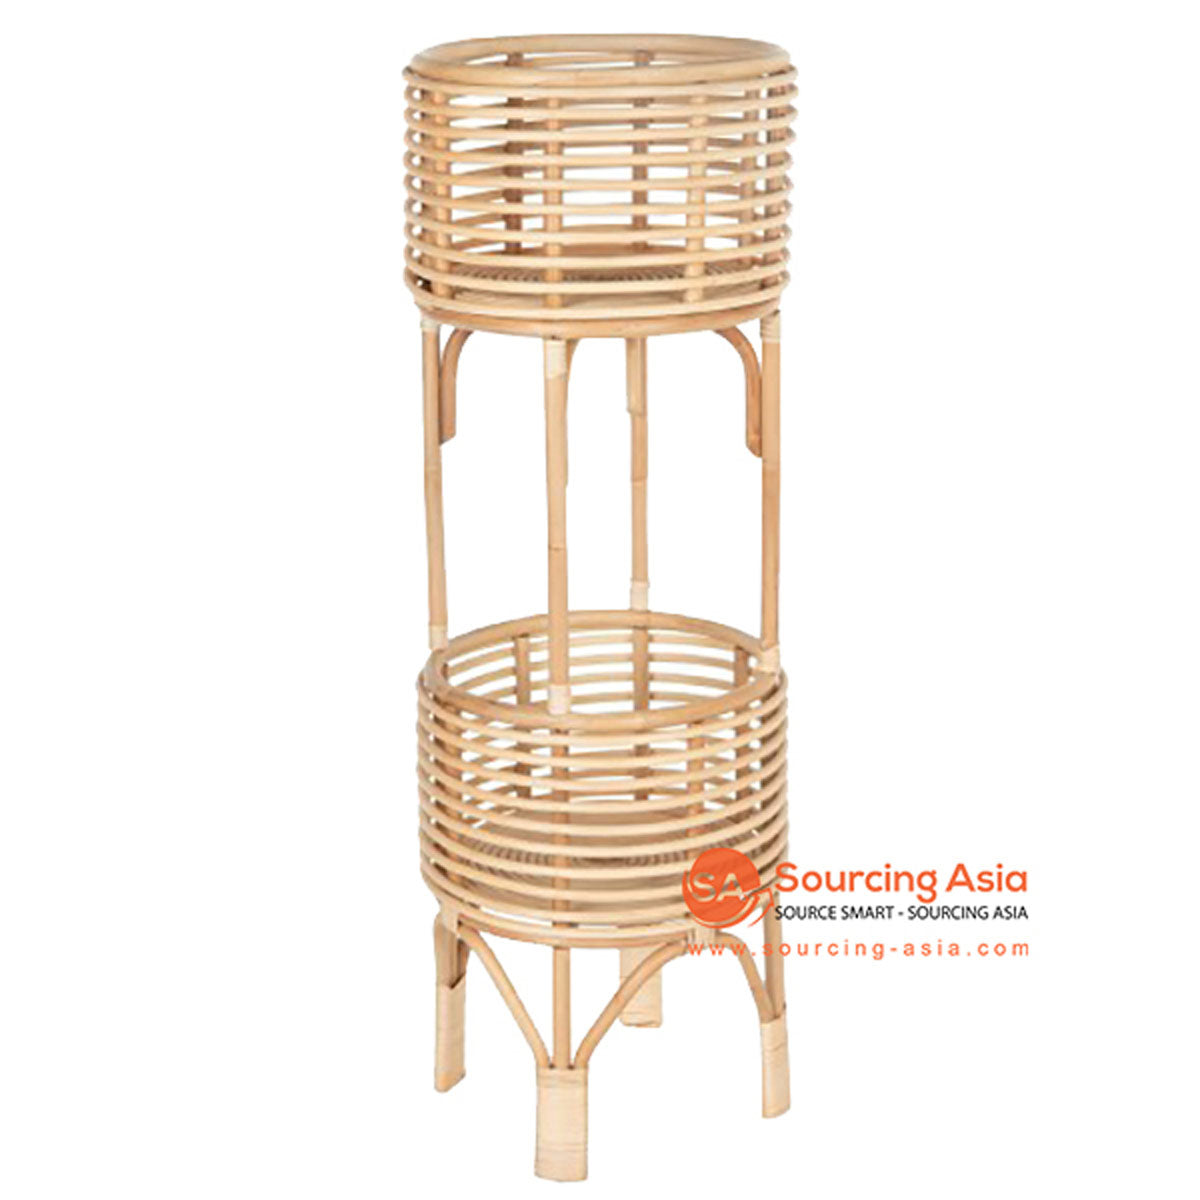 SHL089 NATURAL RATTAN ROUND DOUBLE PLANTERS